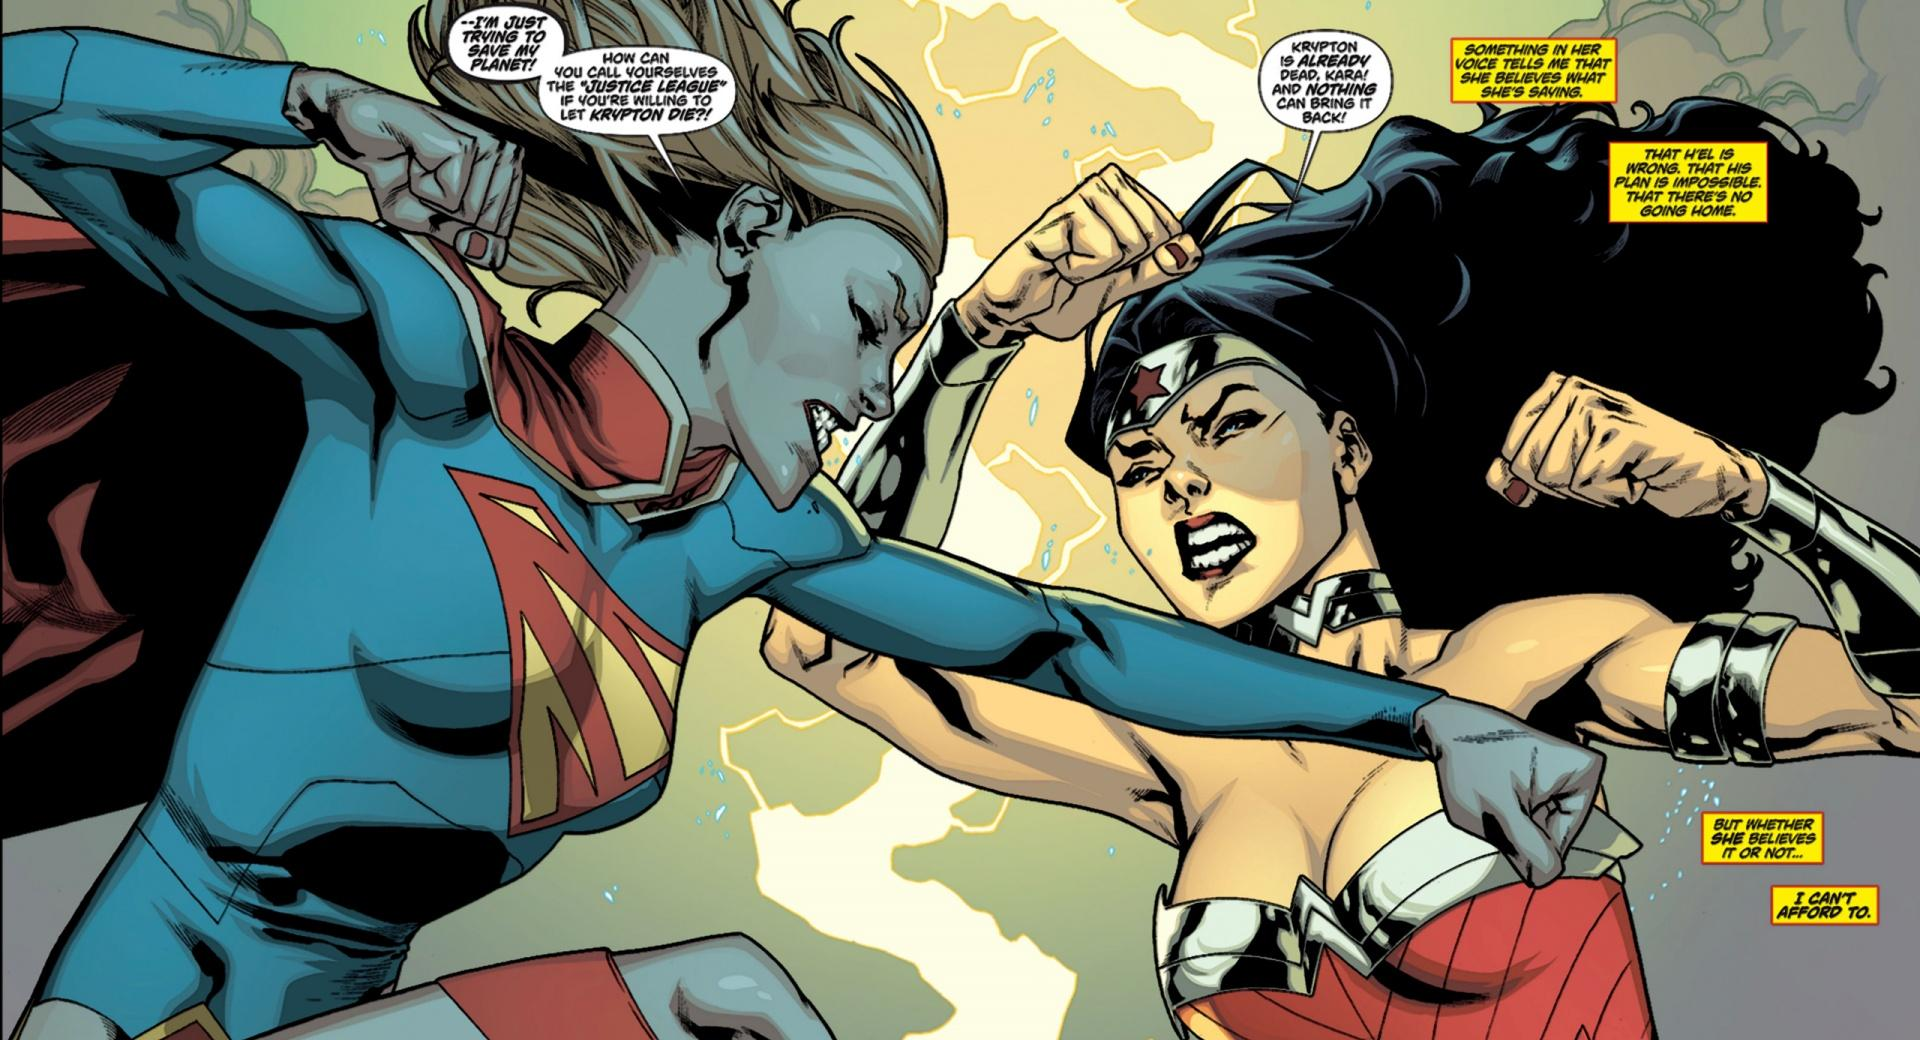 Supergirl Wonder Woman Fight wallpapers HD quality